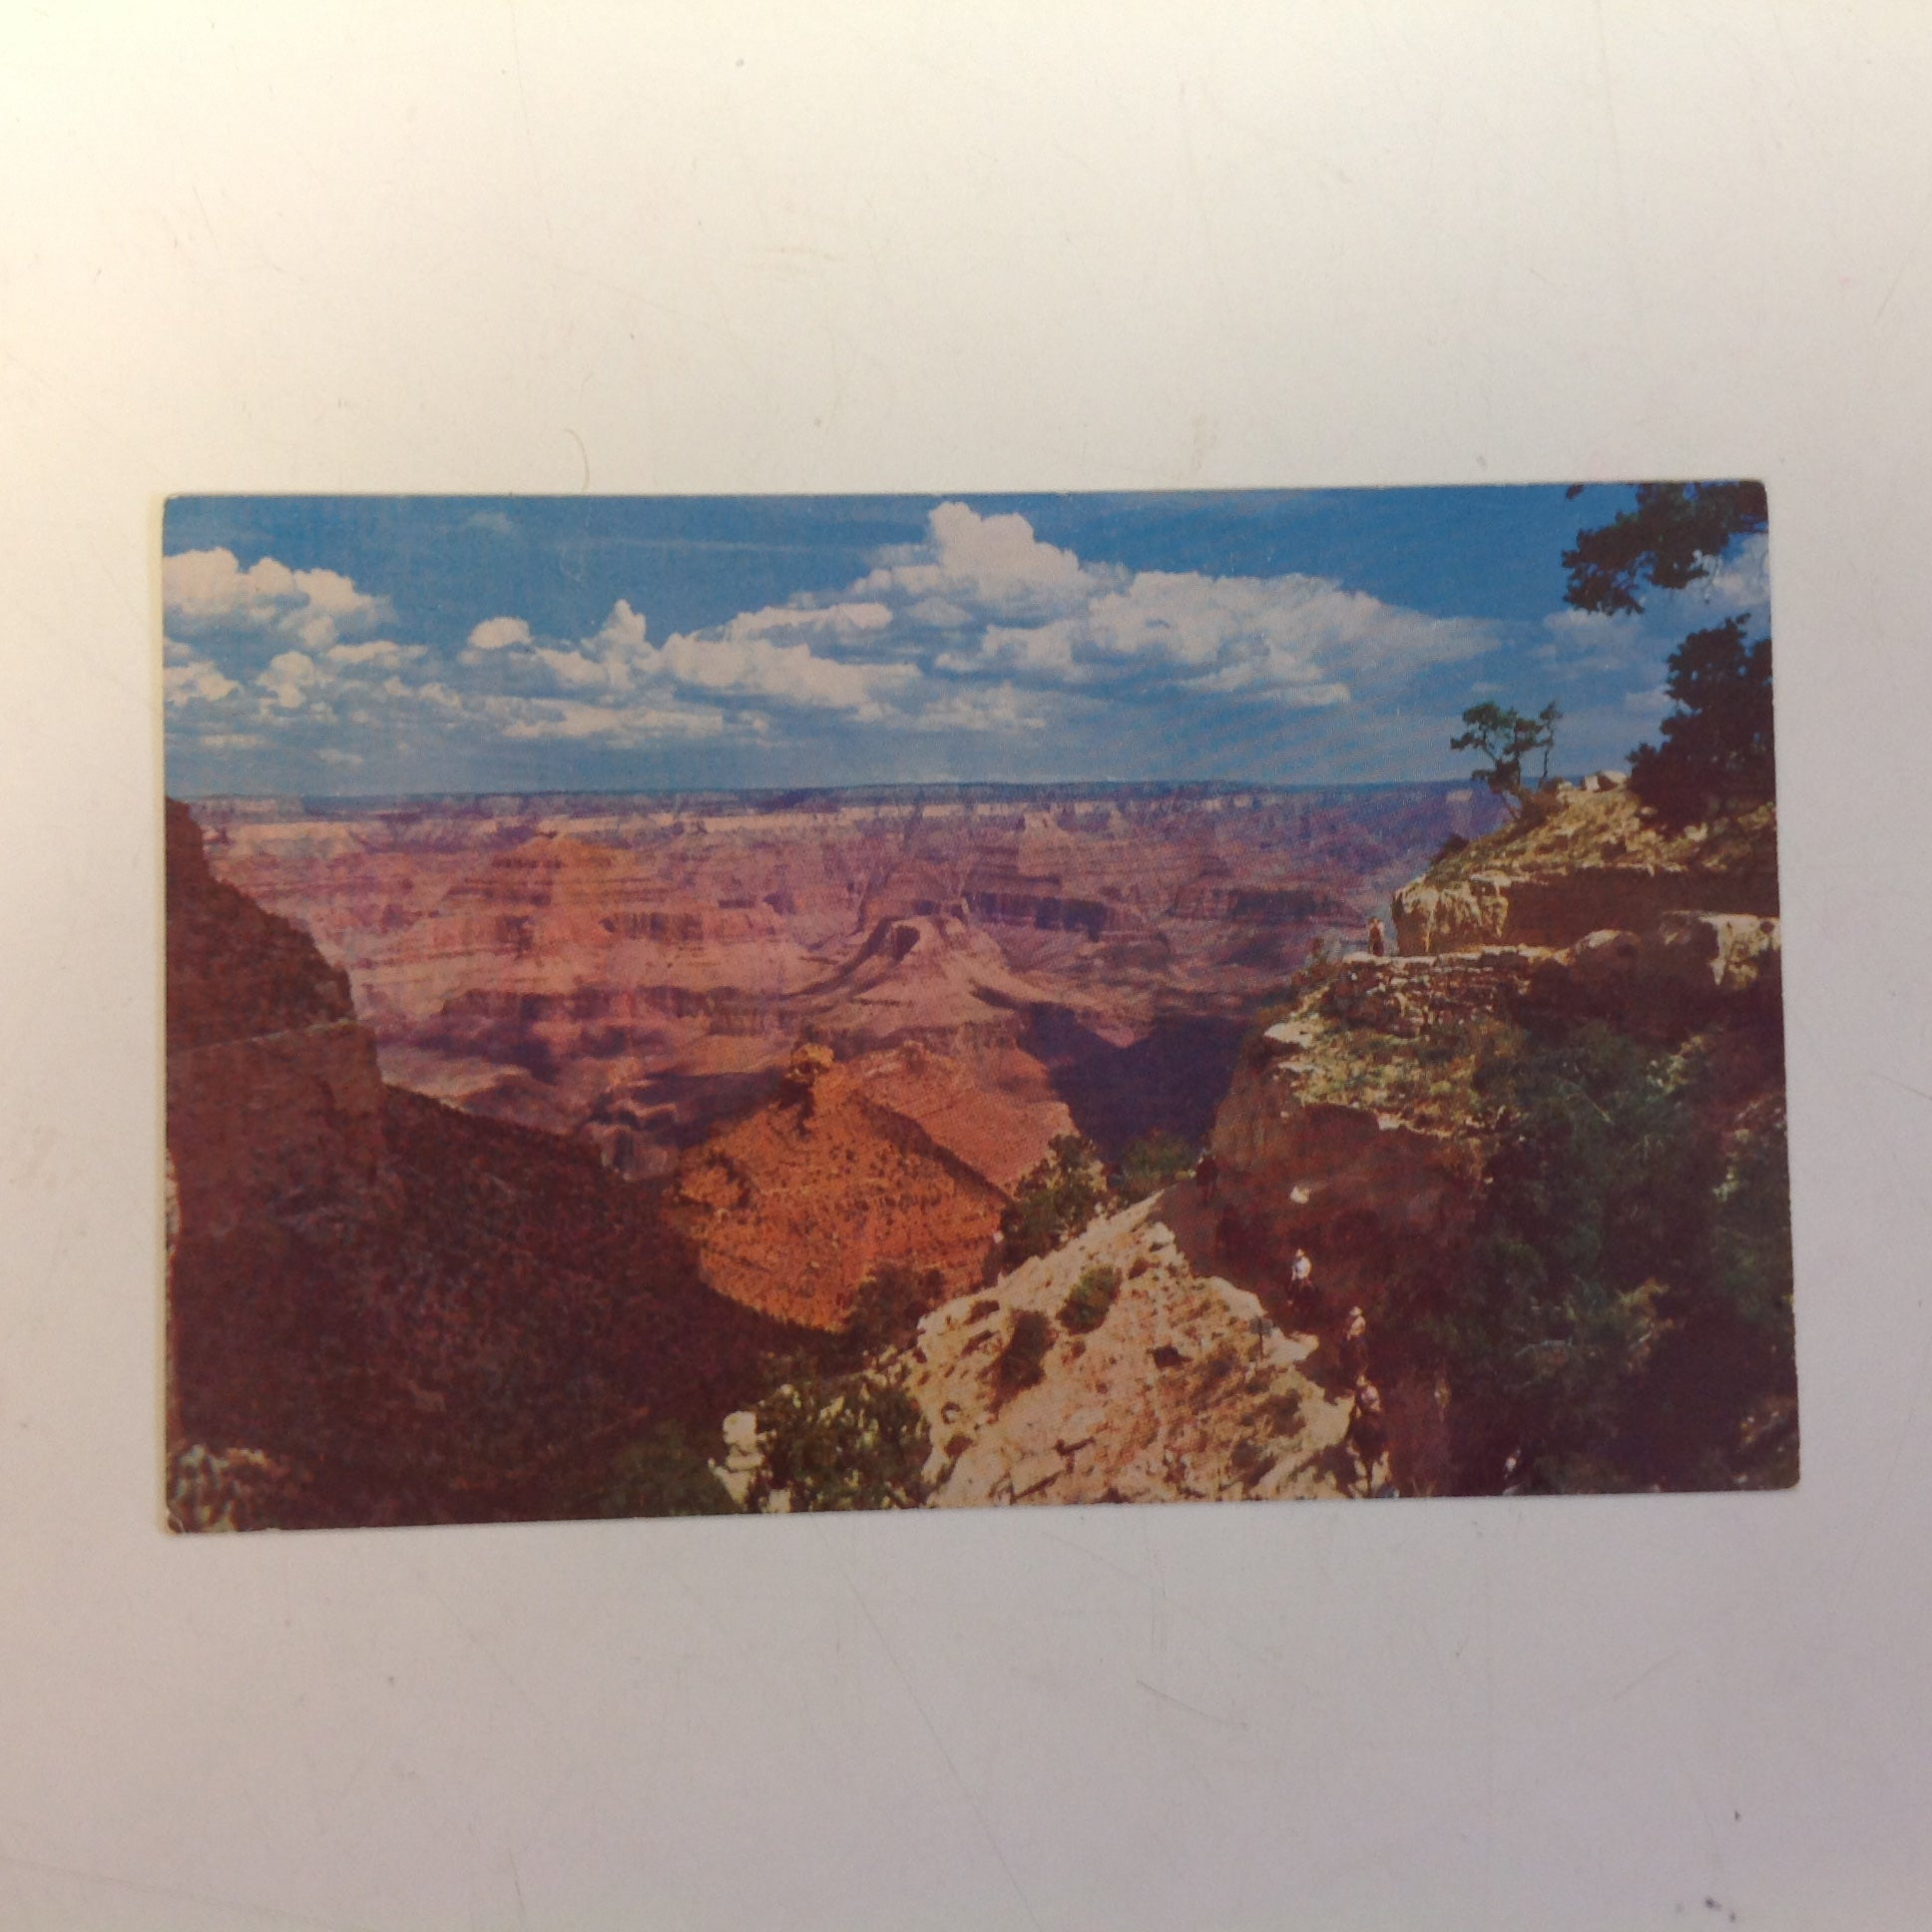 Vintage Fred Harvey Souvenir Color Photo Postcard Bright Angel Trail Grand Canyon National Park Arizona